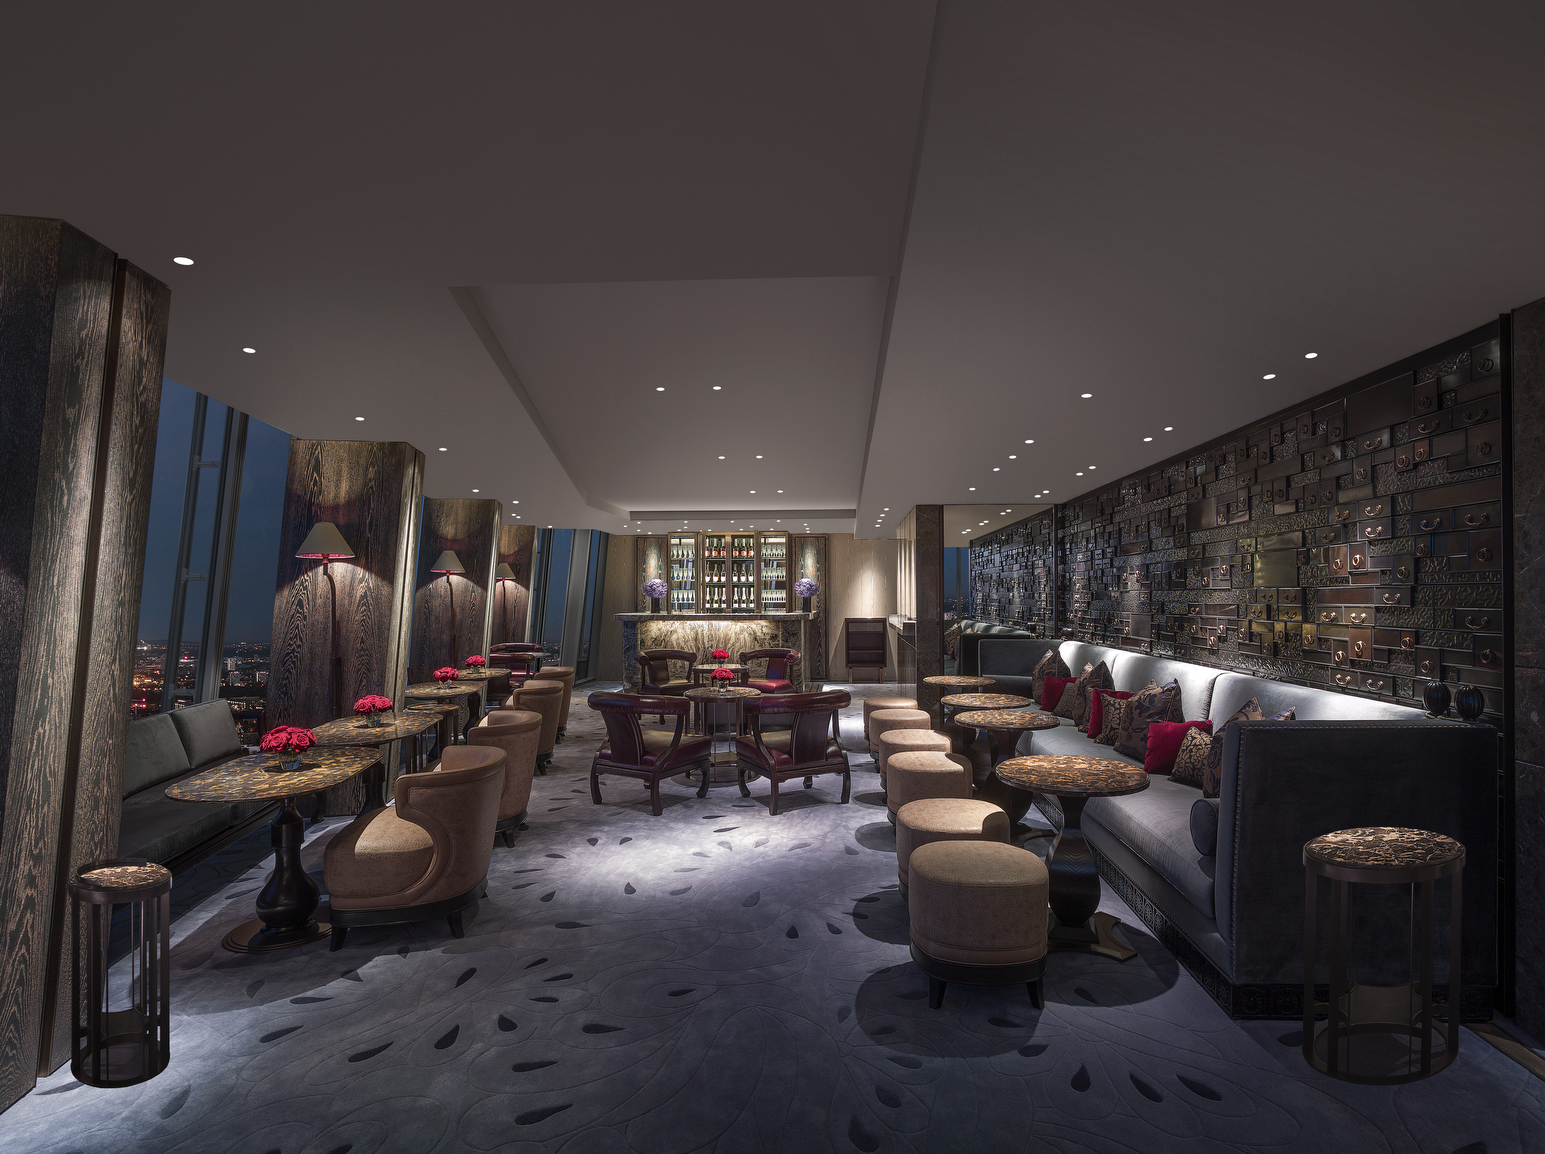 GONG - Shangri-La Hotel, The Shard - London